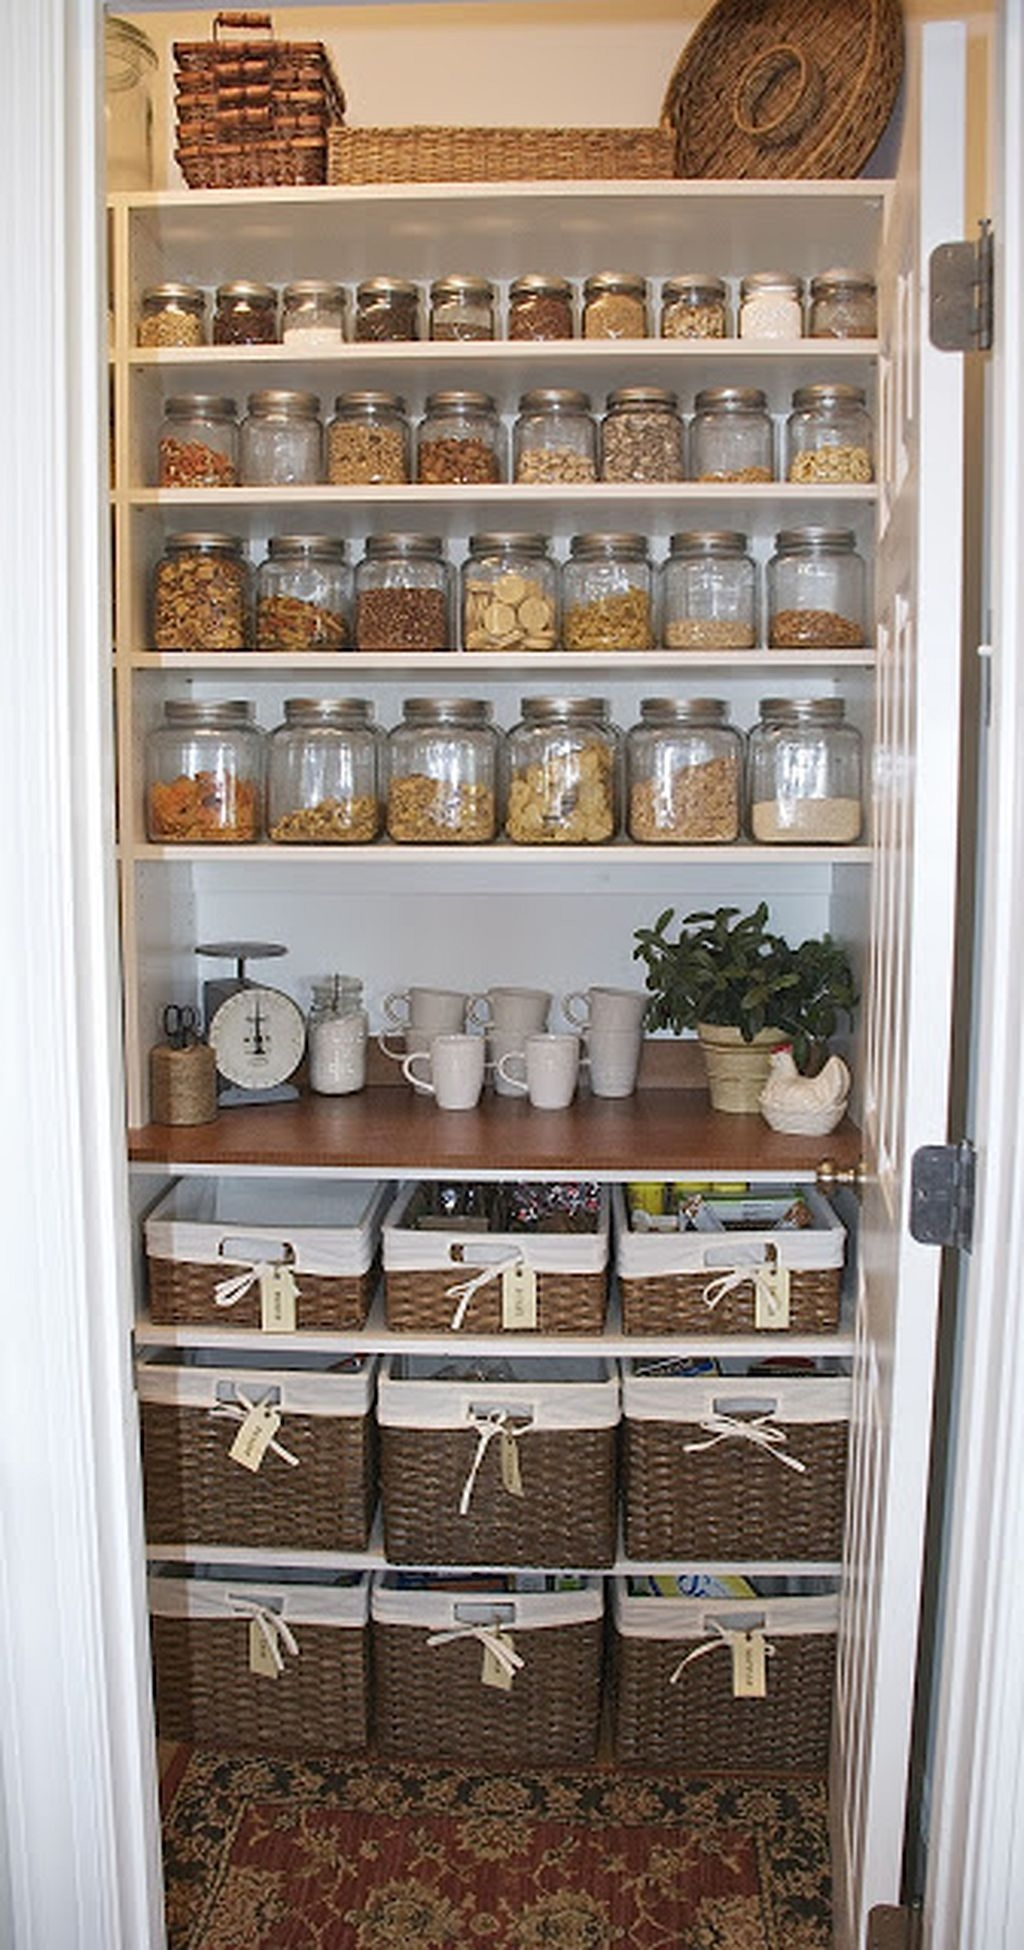 60 Pantry Organization Ideas 54  Kitchen organization